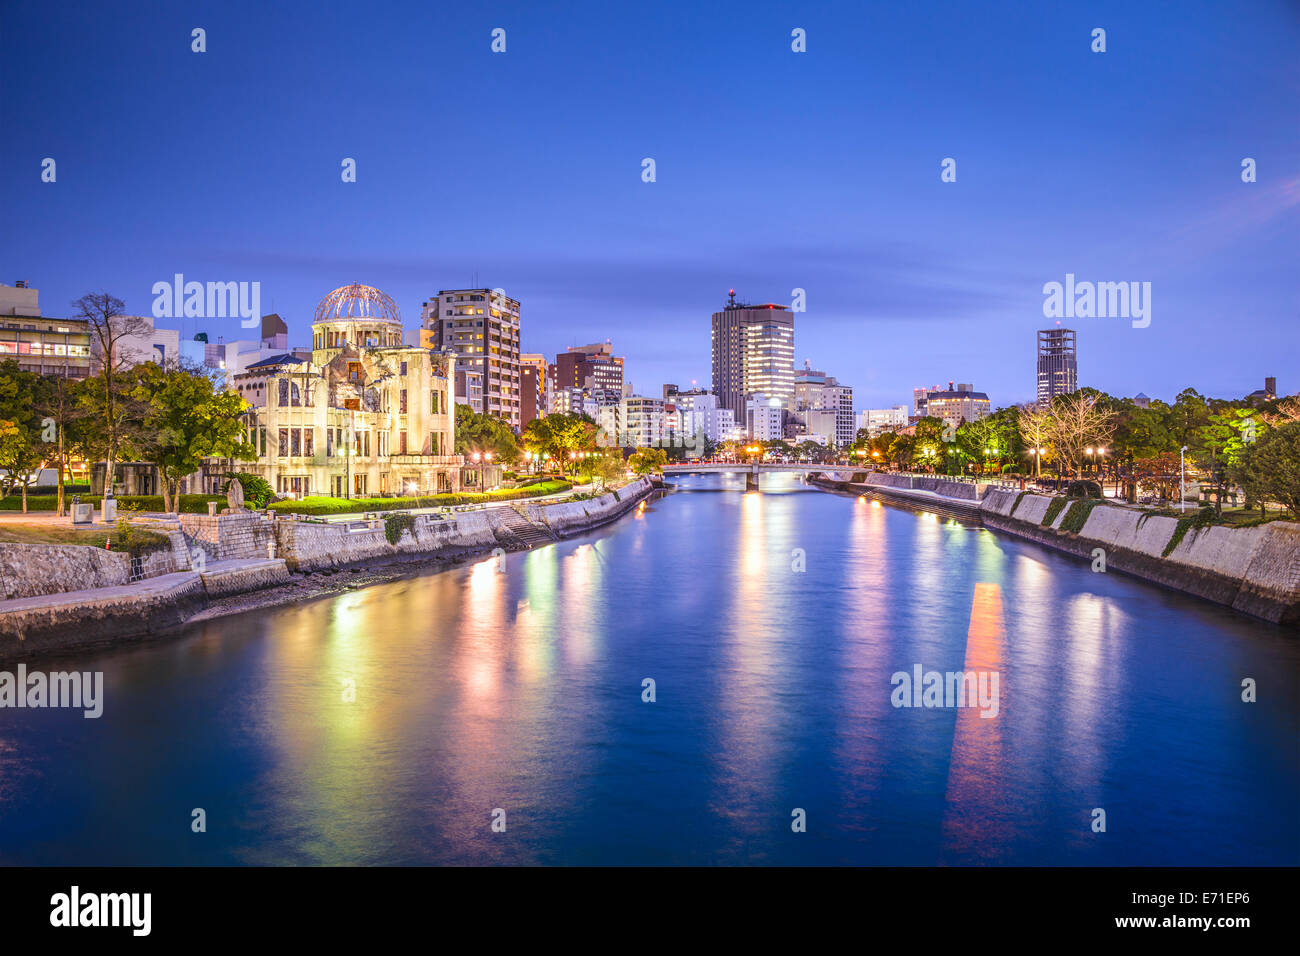 Hiroshima, Japan city skyline on the Otagawa River and Peace Memorial Park. - Stock Image